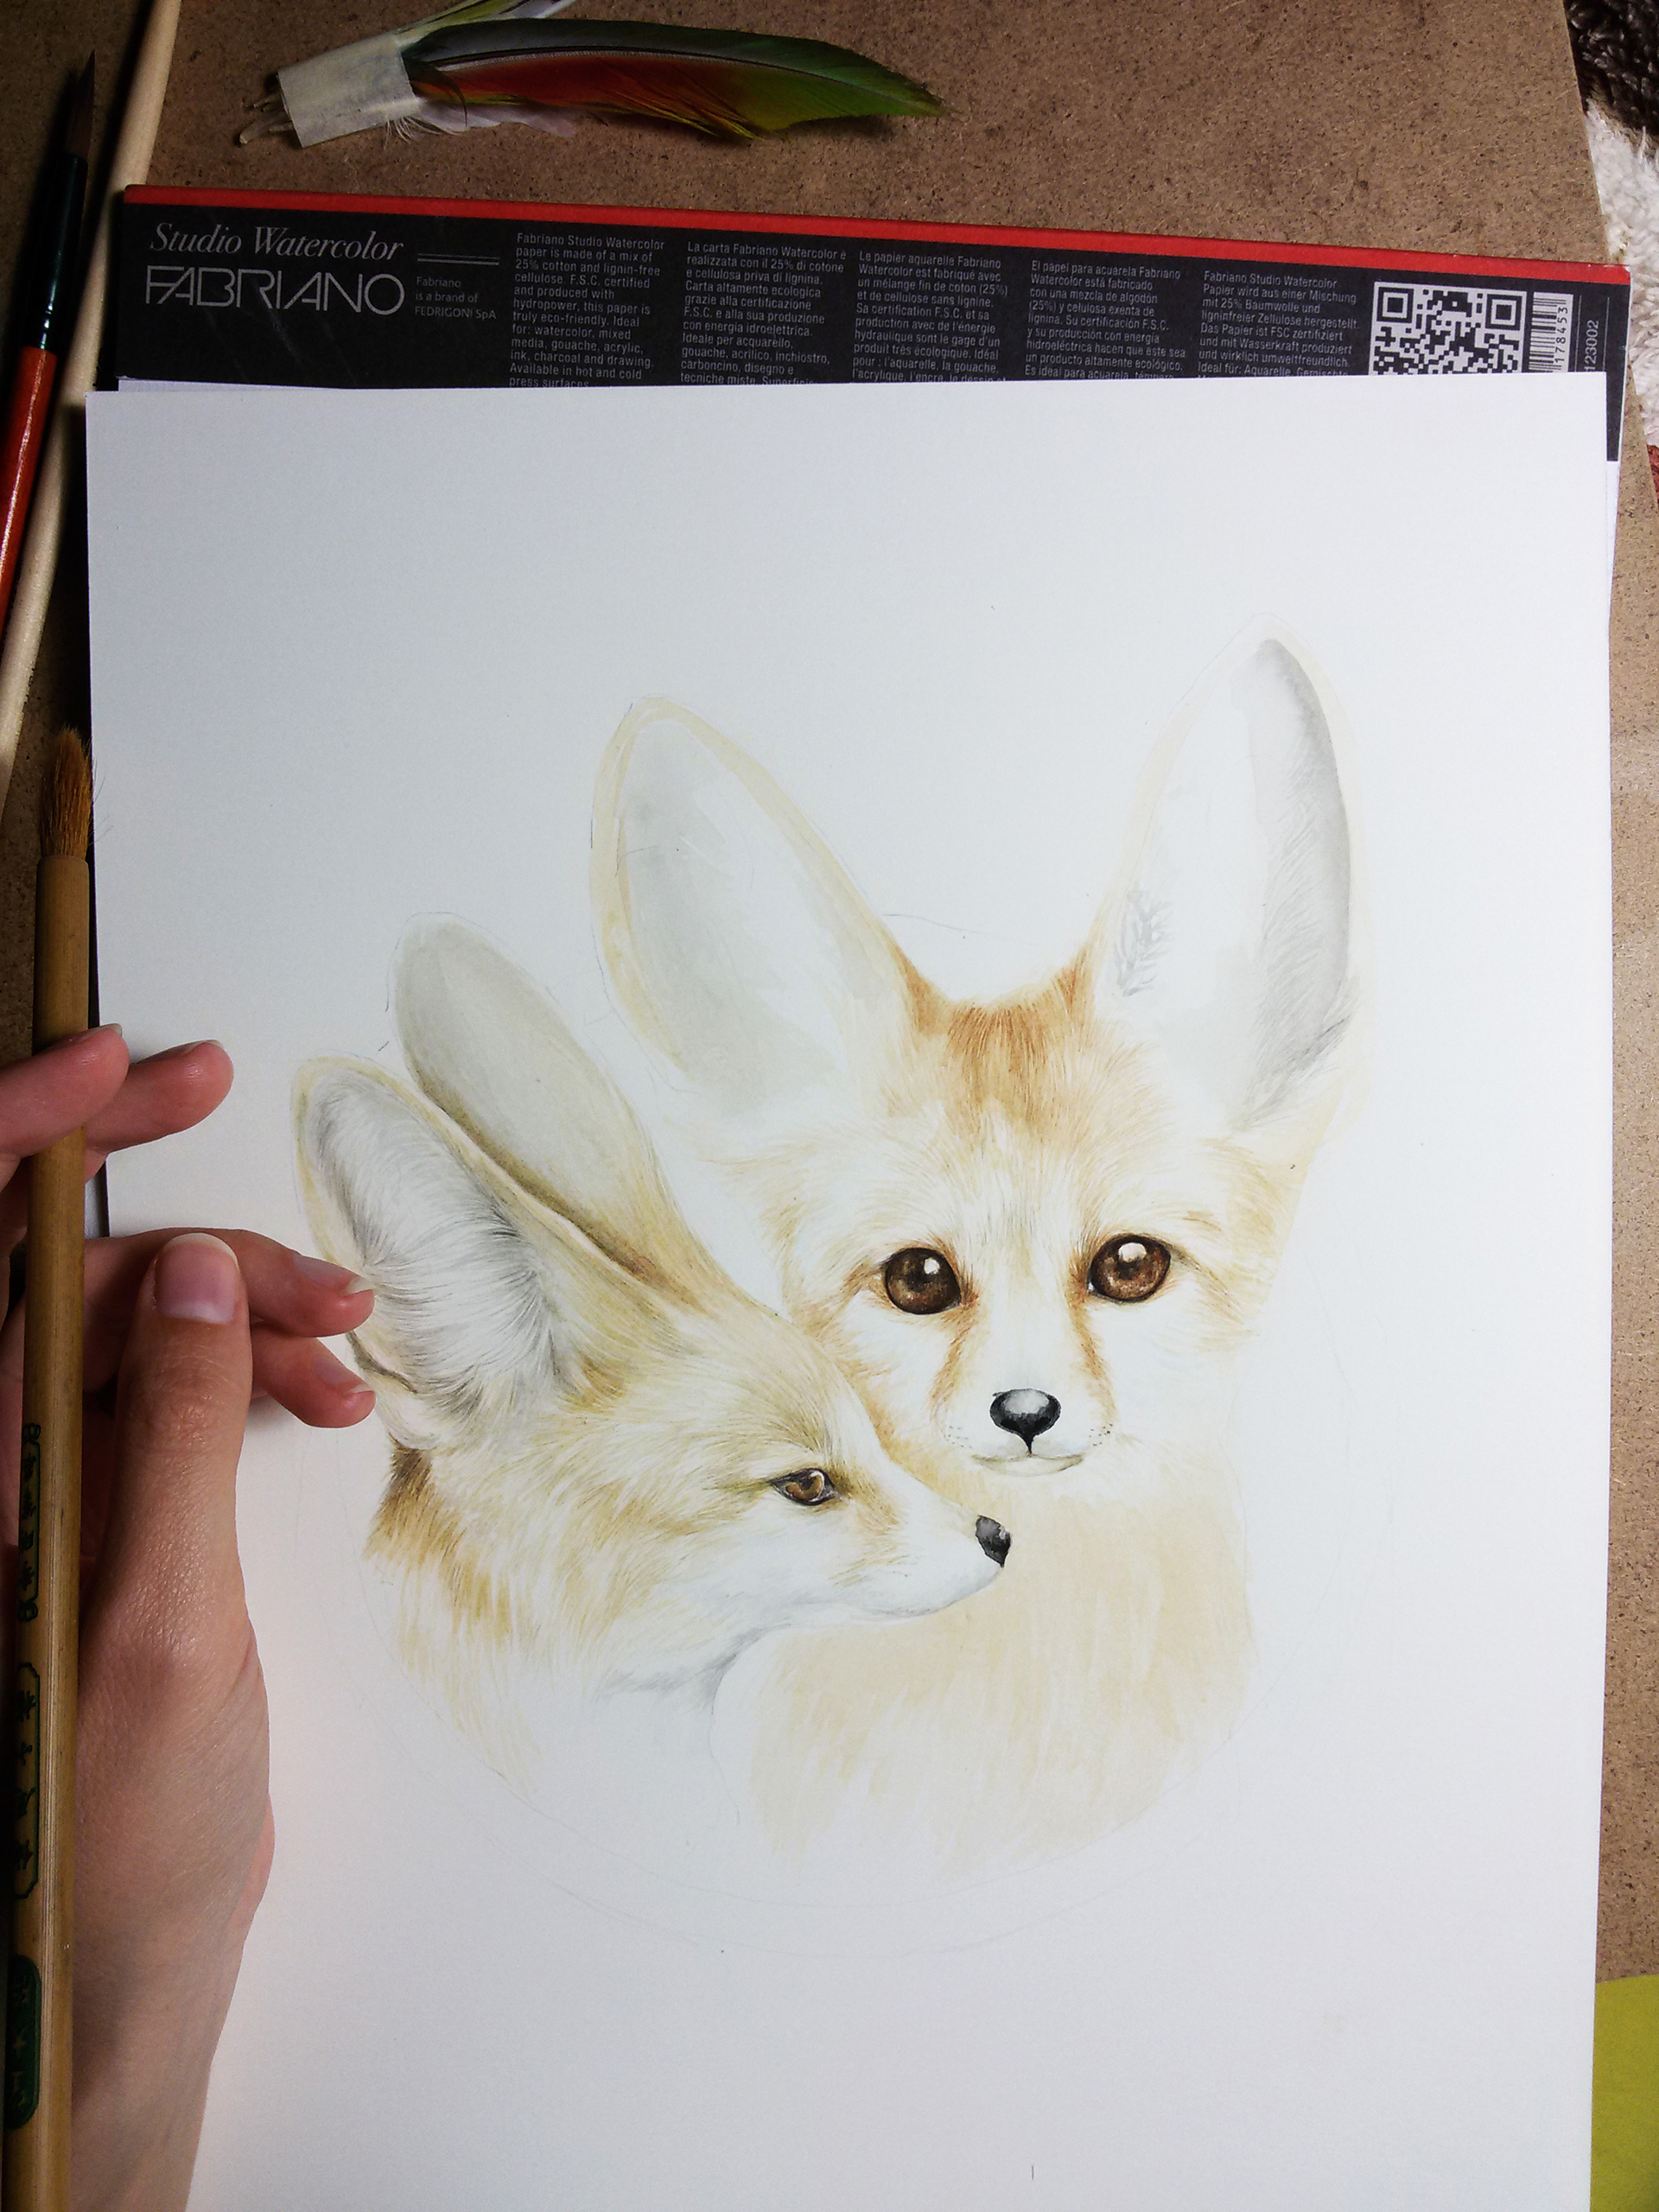 fennec foxes by Marchebbana on Behance